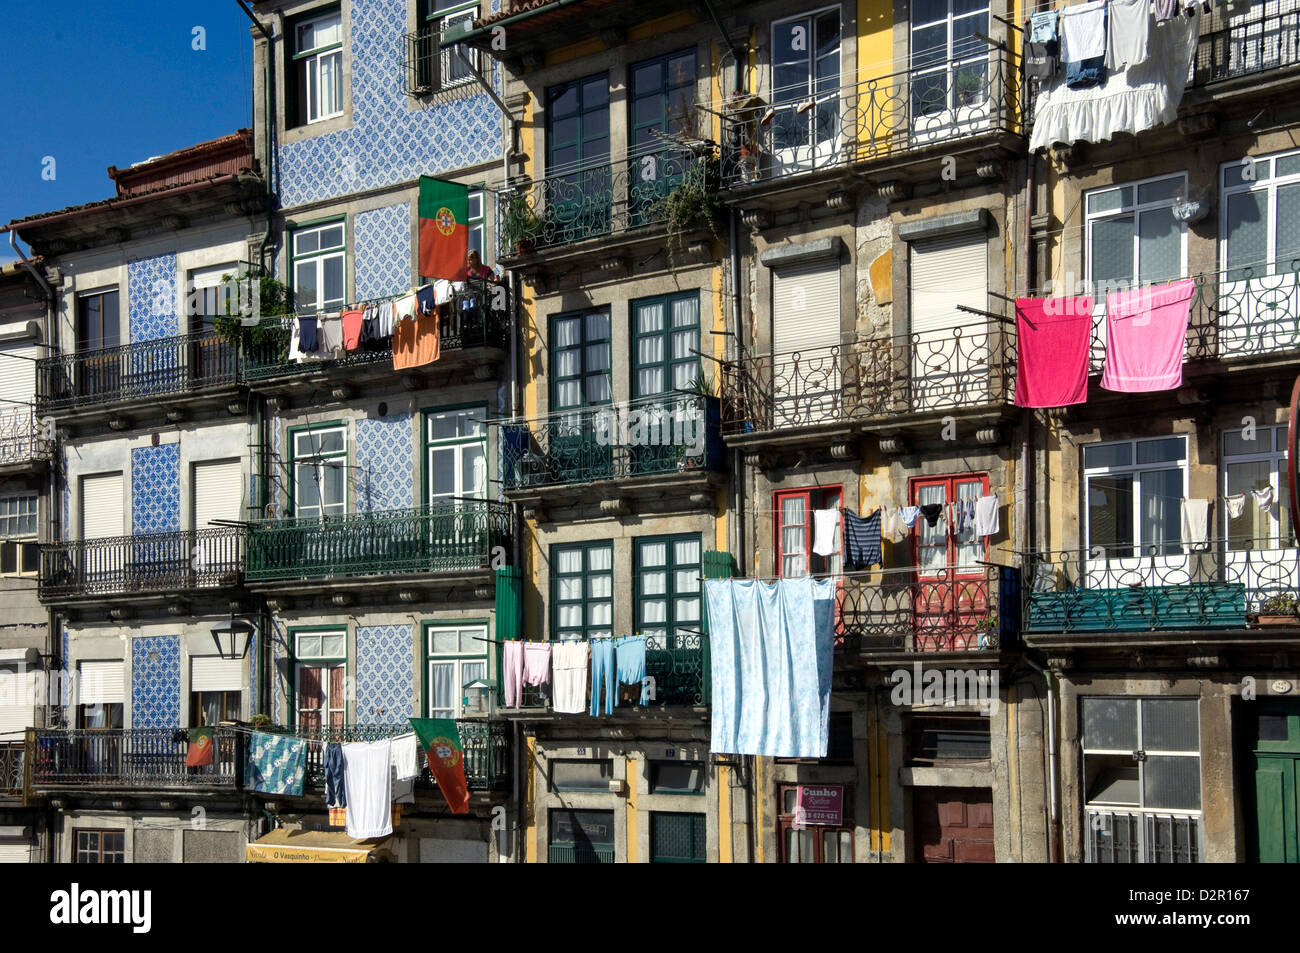 A street in the old town with traditional balconies, tiled panels on the outside walls, washing hanging, Oporto, - Stock Image